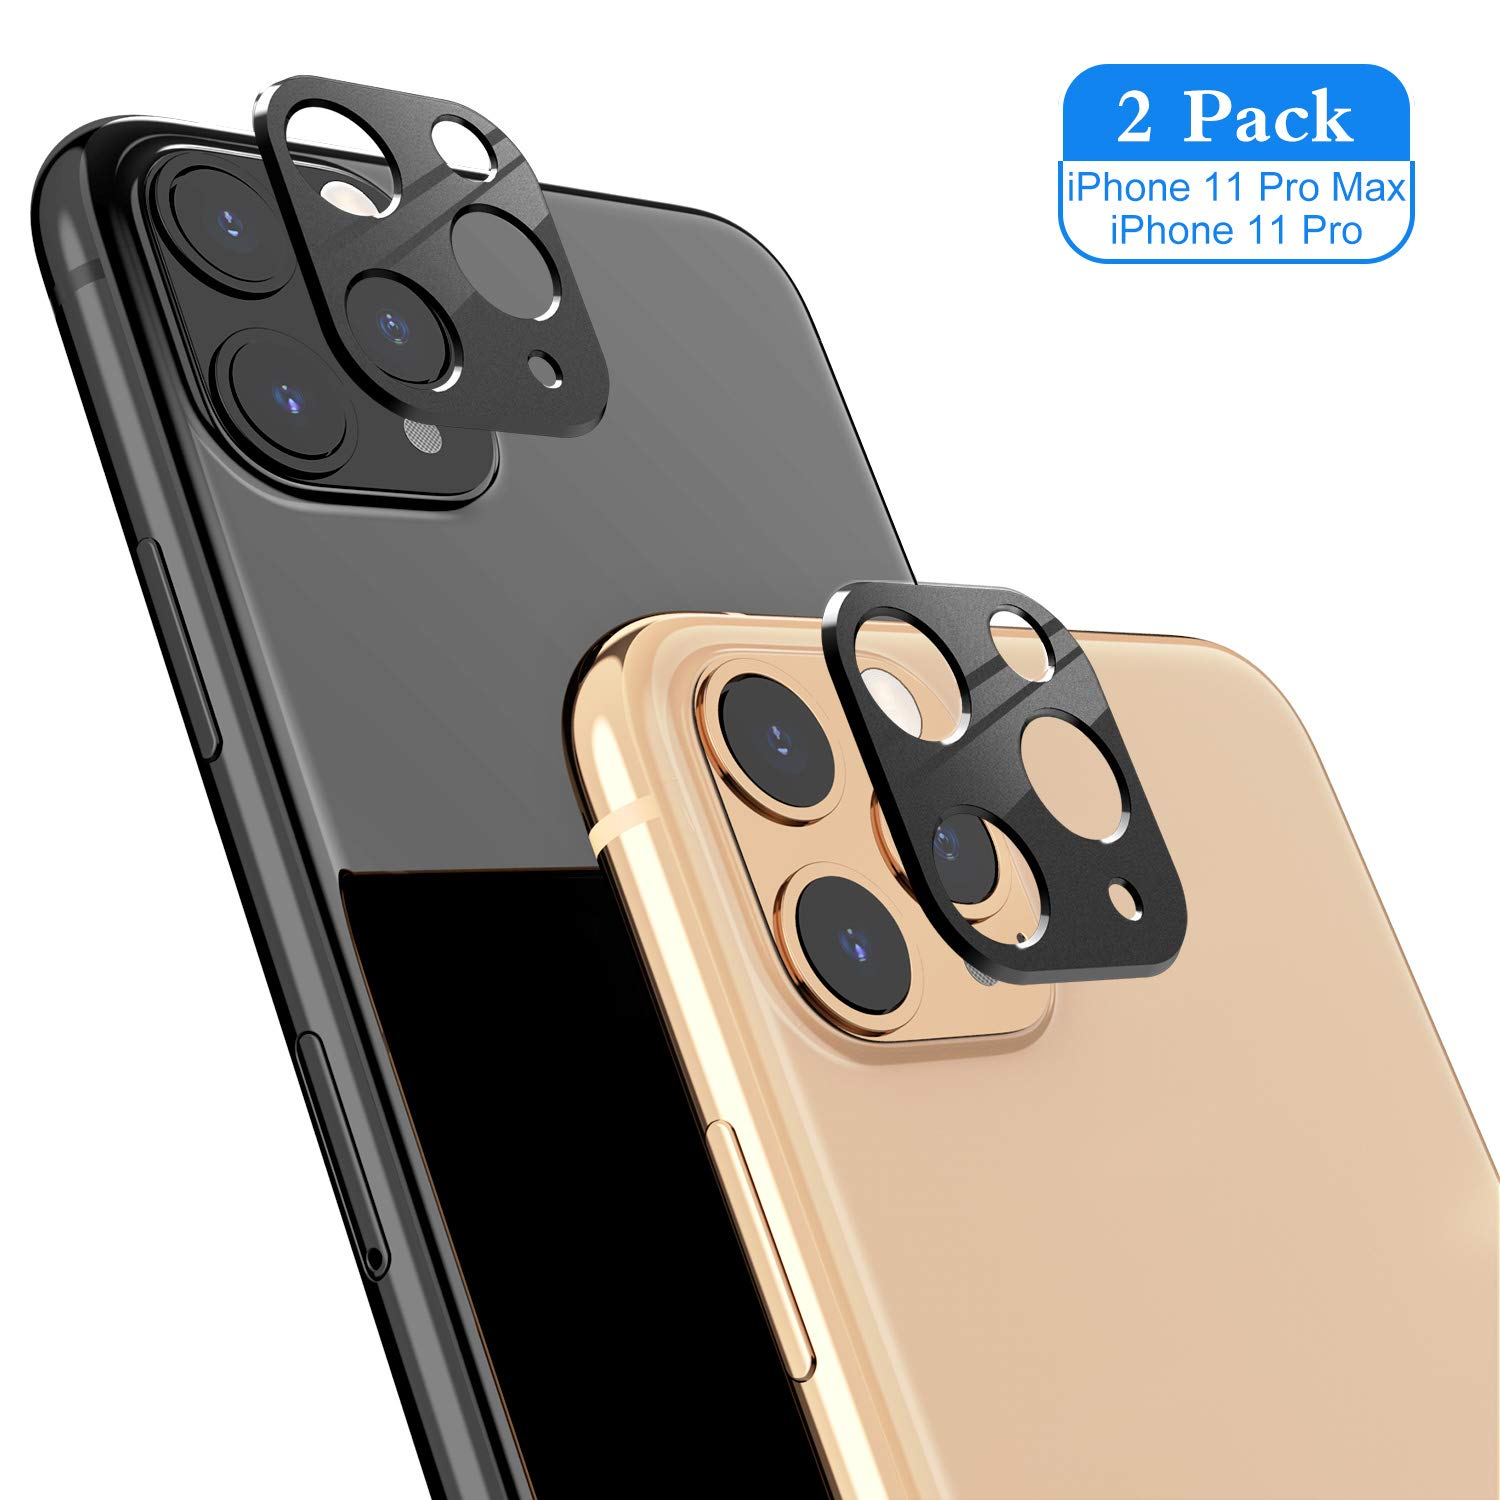 Camera Lens Protector Compatible for iPhone 11 Pro/iPhone 11 Pro Max, ICHECKEY Super Clear Ultra Thin Anti-Scratch Back Camera Lens Tempered Glass Screen Cover for iPhone 11 Pro 5.8''/11 Pro Max 6.5''